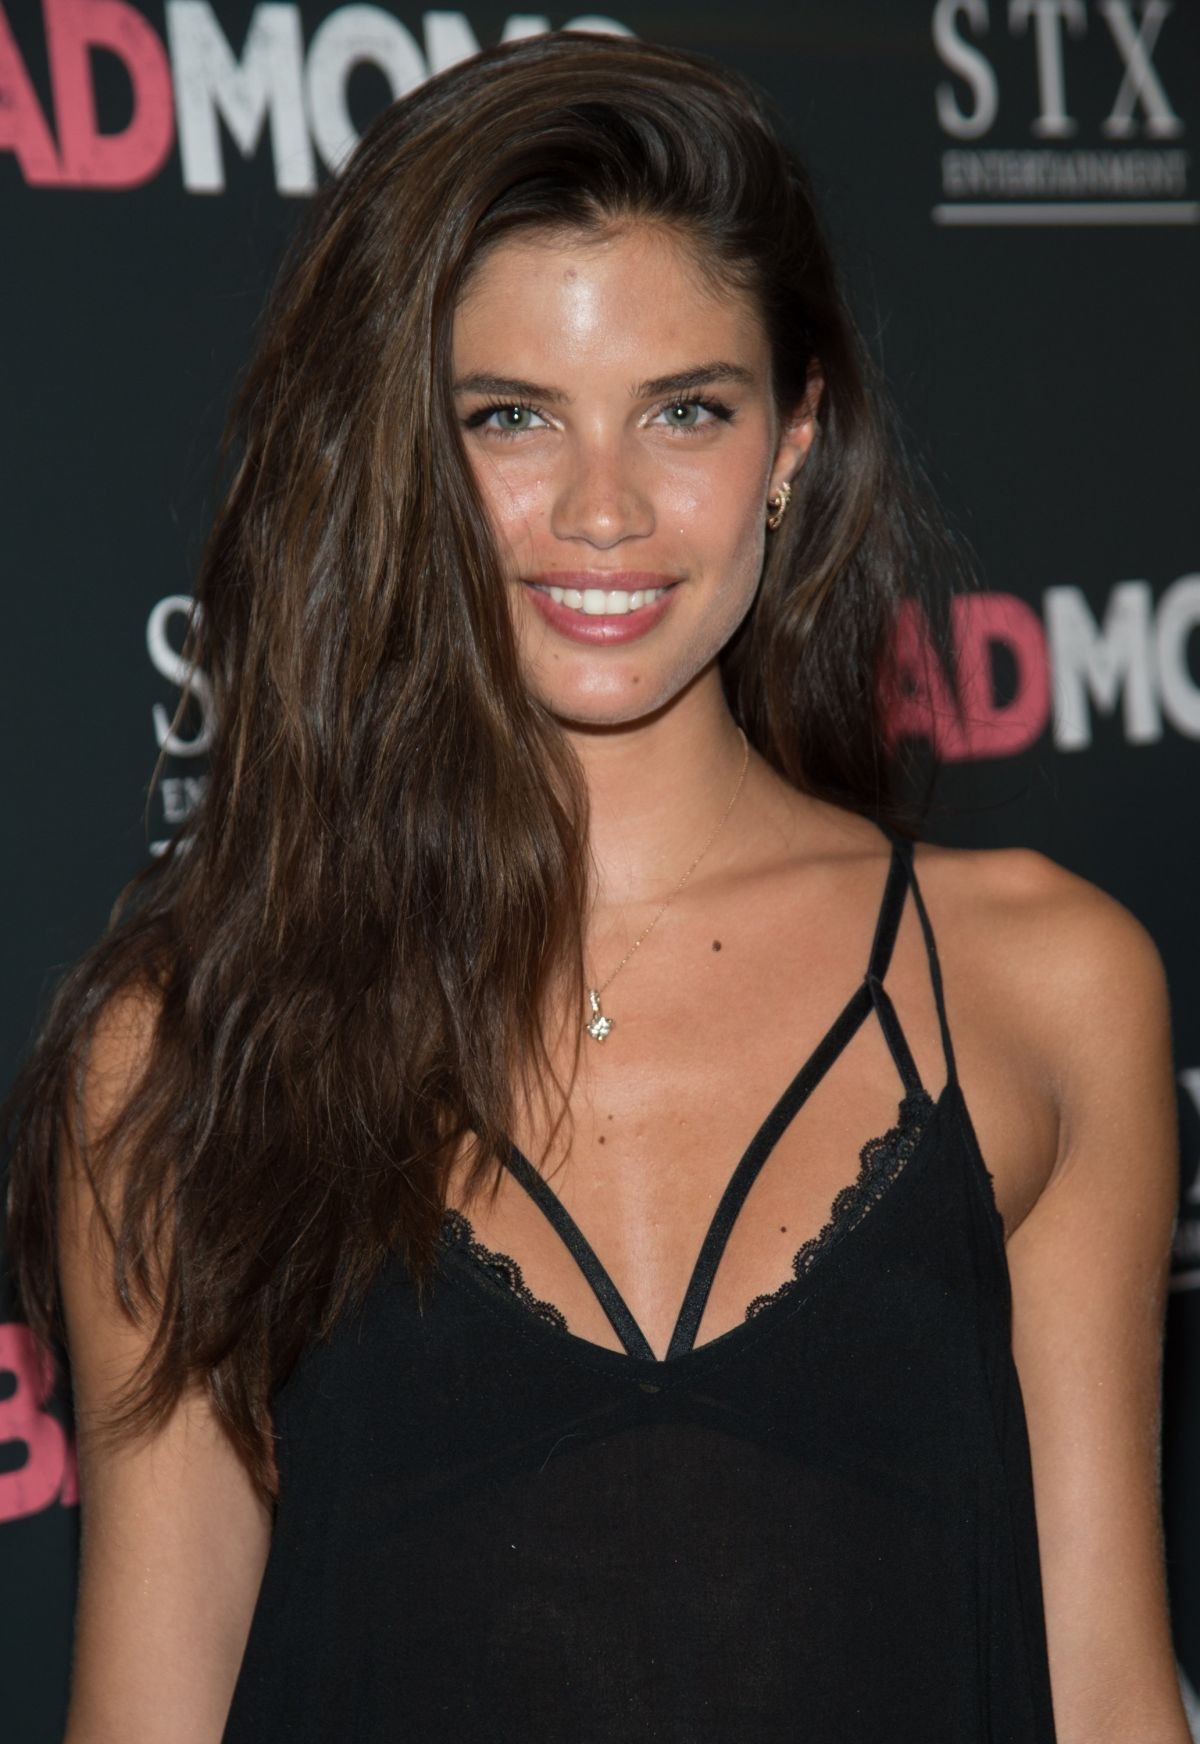 Sara sampaio at the premiere of the killing of a sacred deer in cannes nudes (89 photo), Pussy Celebrity picture